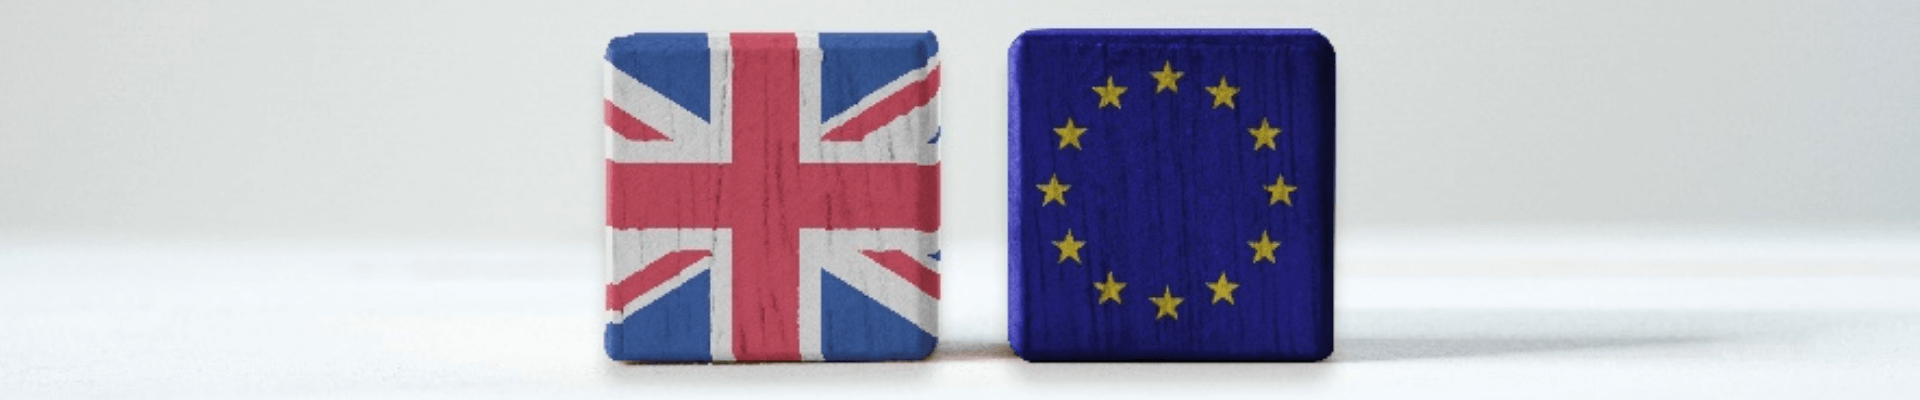 Picture of EU UK. Brexit update. Brexit new latest. eu brexit latest news, brexit changes, brexit changes 2021, vat changes, brexit changes july 1st, what are the new brexit rules, what are the new vat changes, what will replace vat after brexit, what are the july 1st brexit updates,